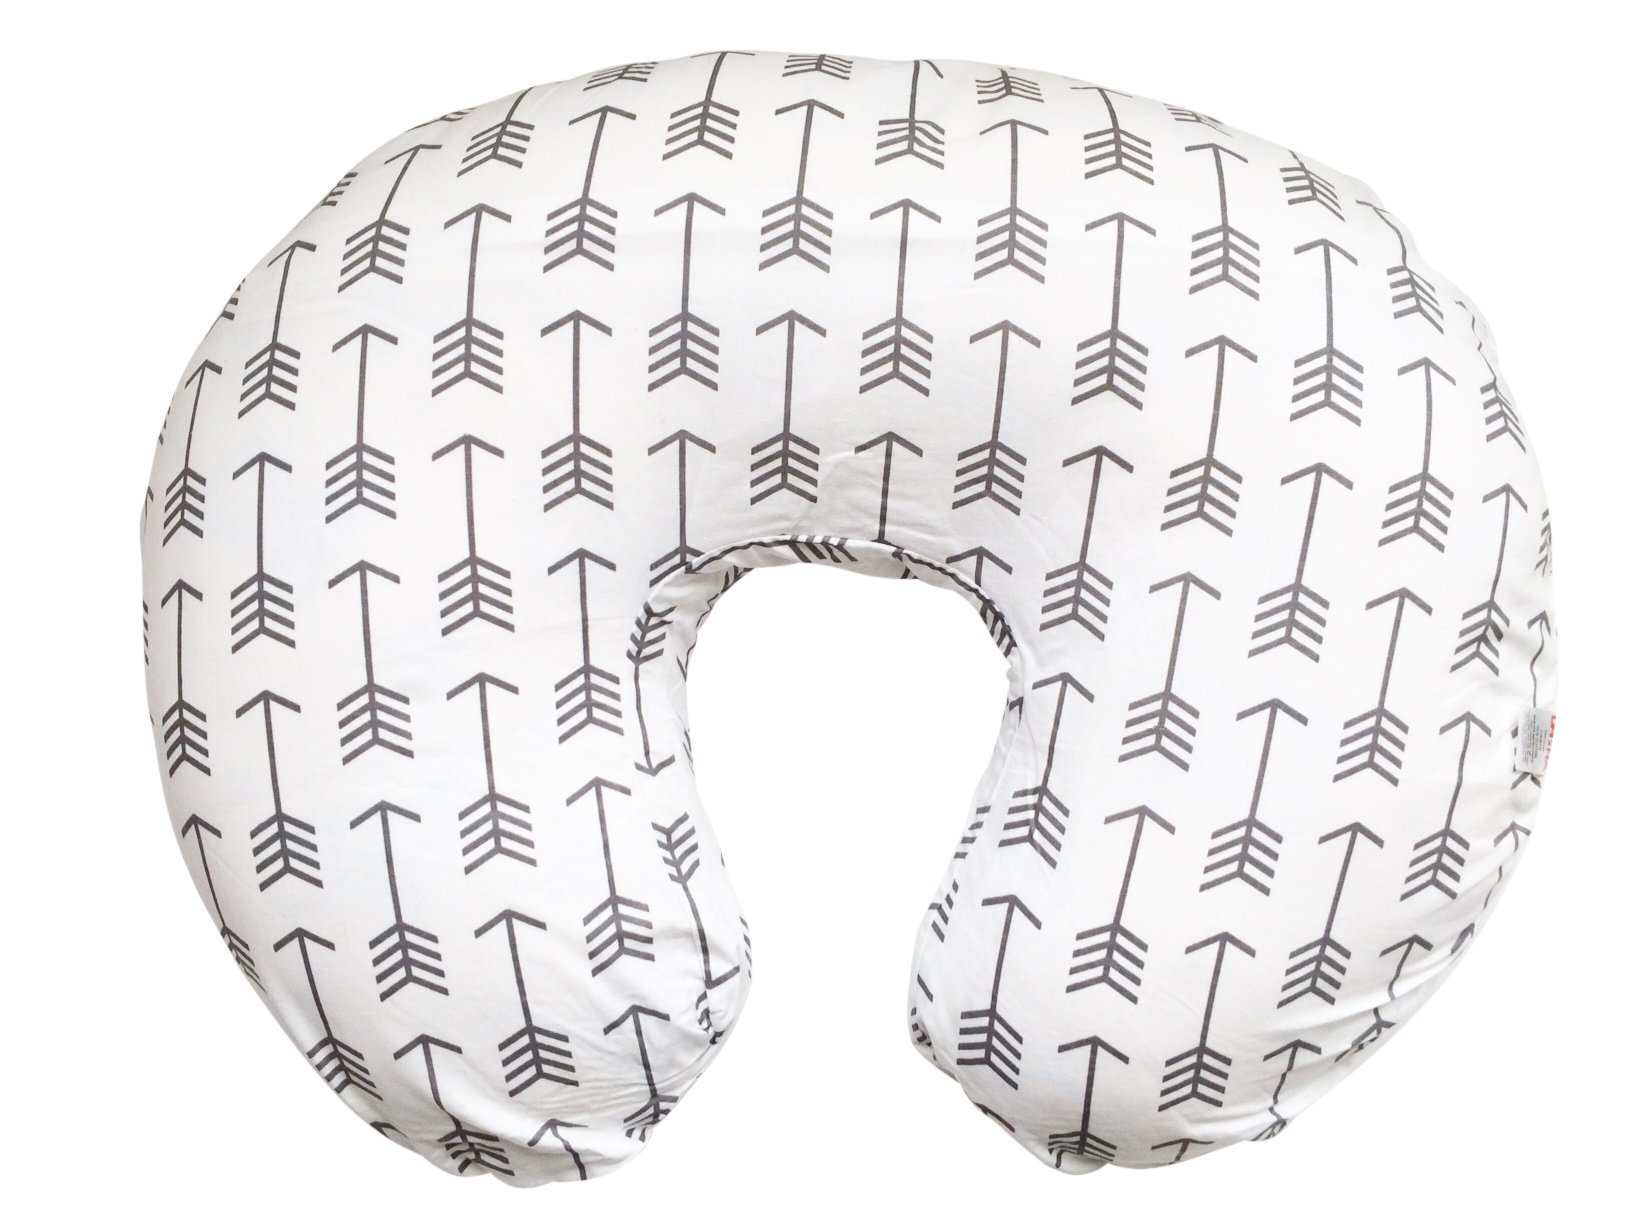 Maternity Breastfeeding Pillow Cover by Danha-Newborn Baby Feeding Cushion Case-Cute Donut Shape Wedge Pillow-Best Infant Support-for New Moms-White Arrow Prints Slipcover by Danha (Image #1)